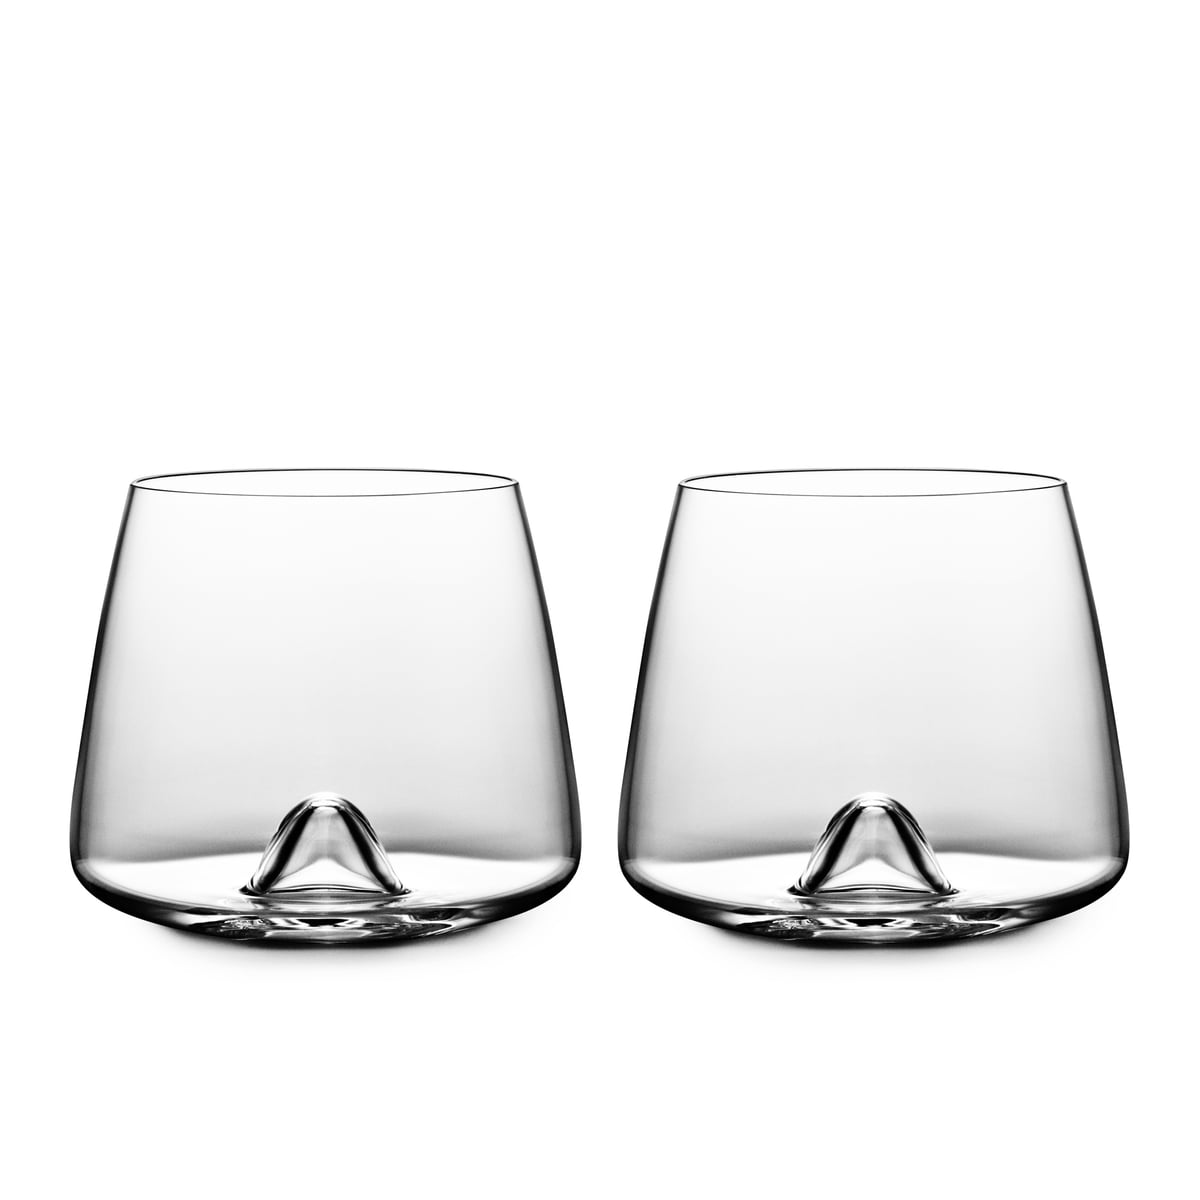 whisky glas normann copenhagen shop. Black Bedroom Furniture Sets. Home Design Ideas